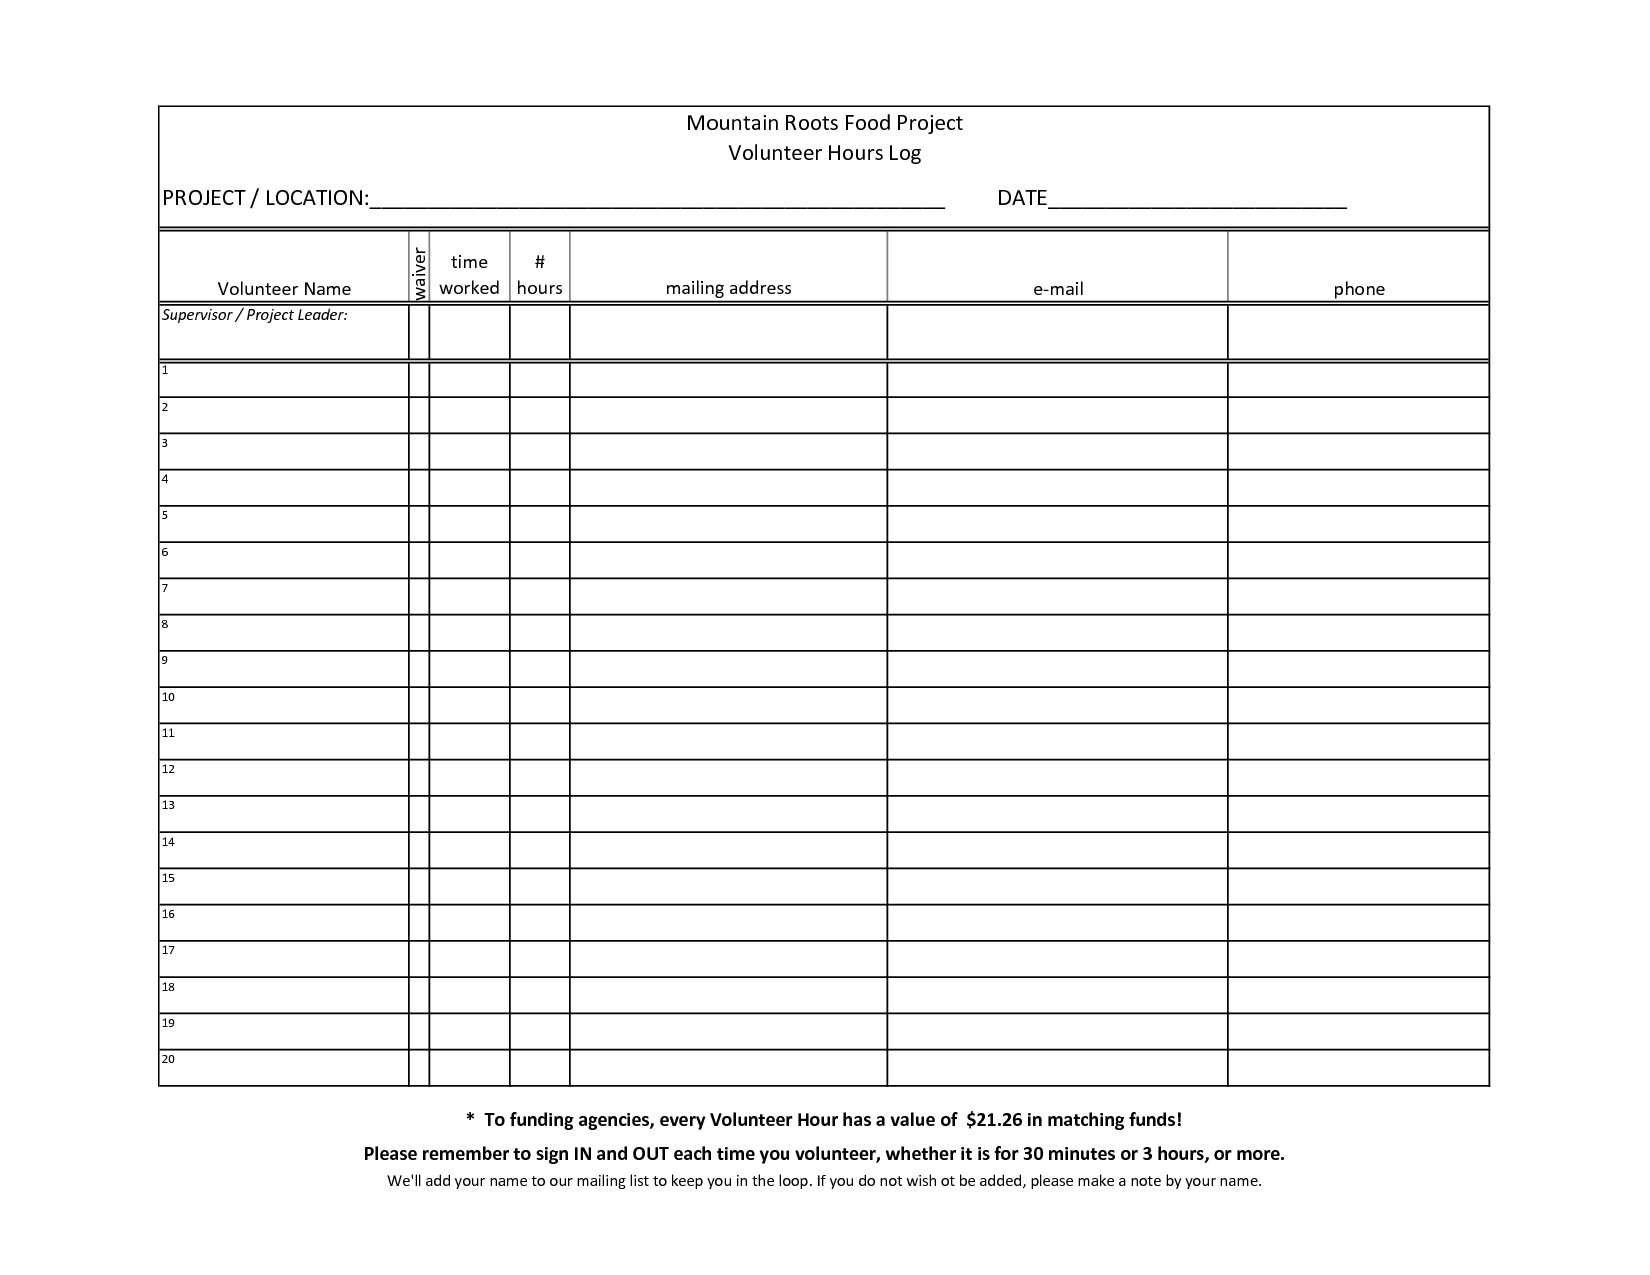 picture about Free Printable Community Service Log Sheet named Volunteer+Hrs+Log+Sheet+Template FARA Remedy Equipment